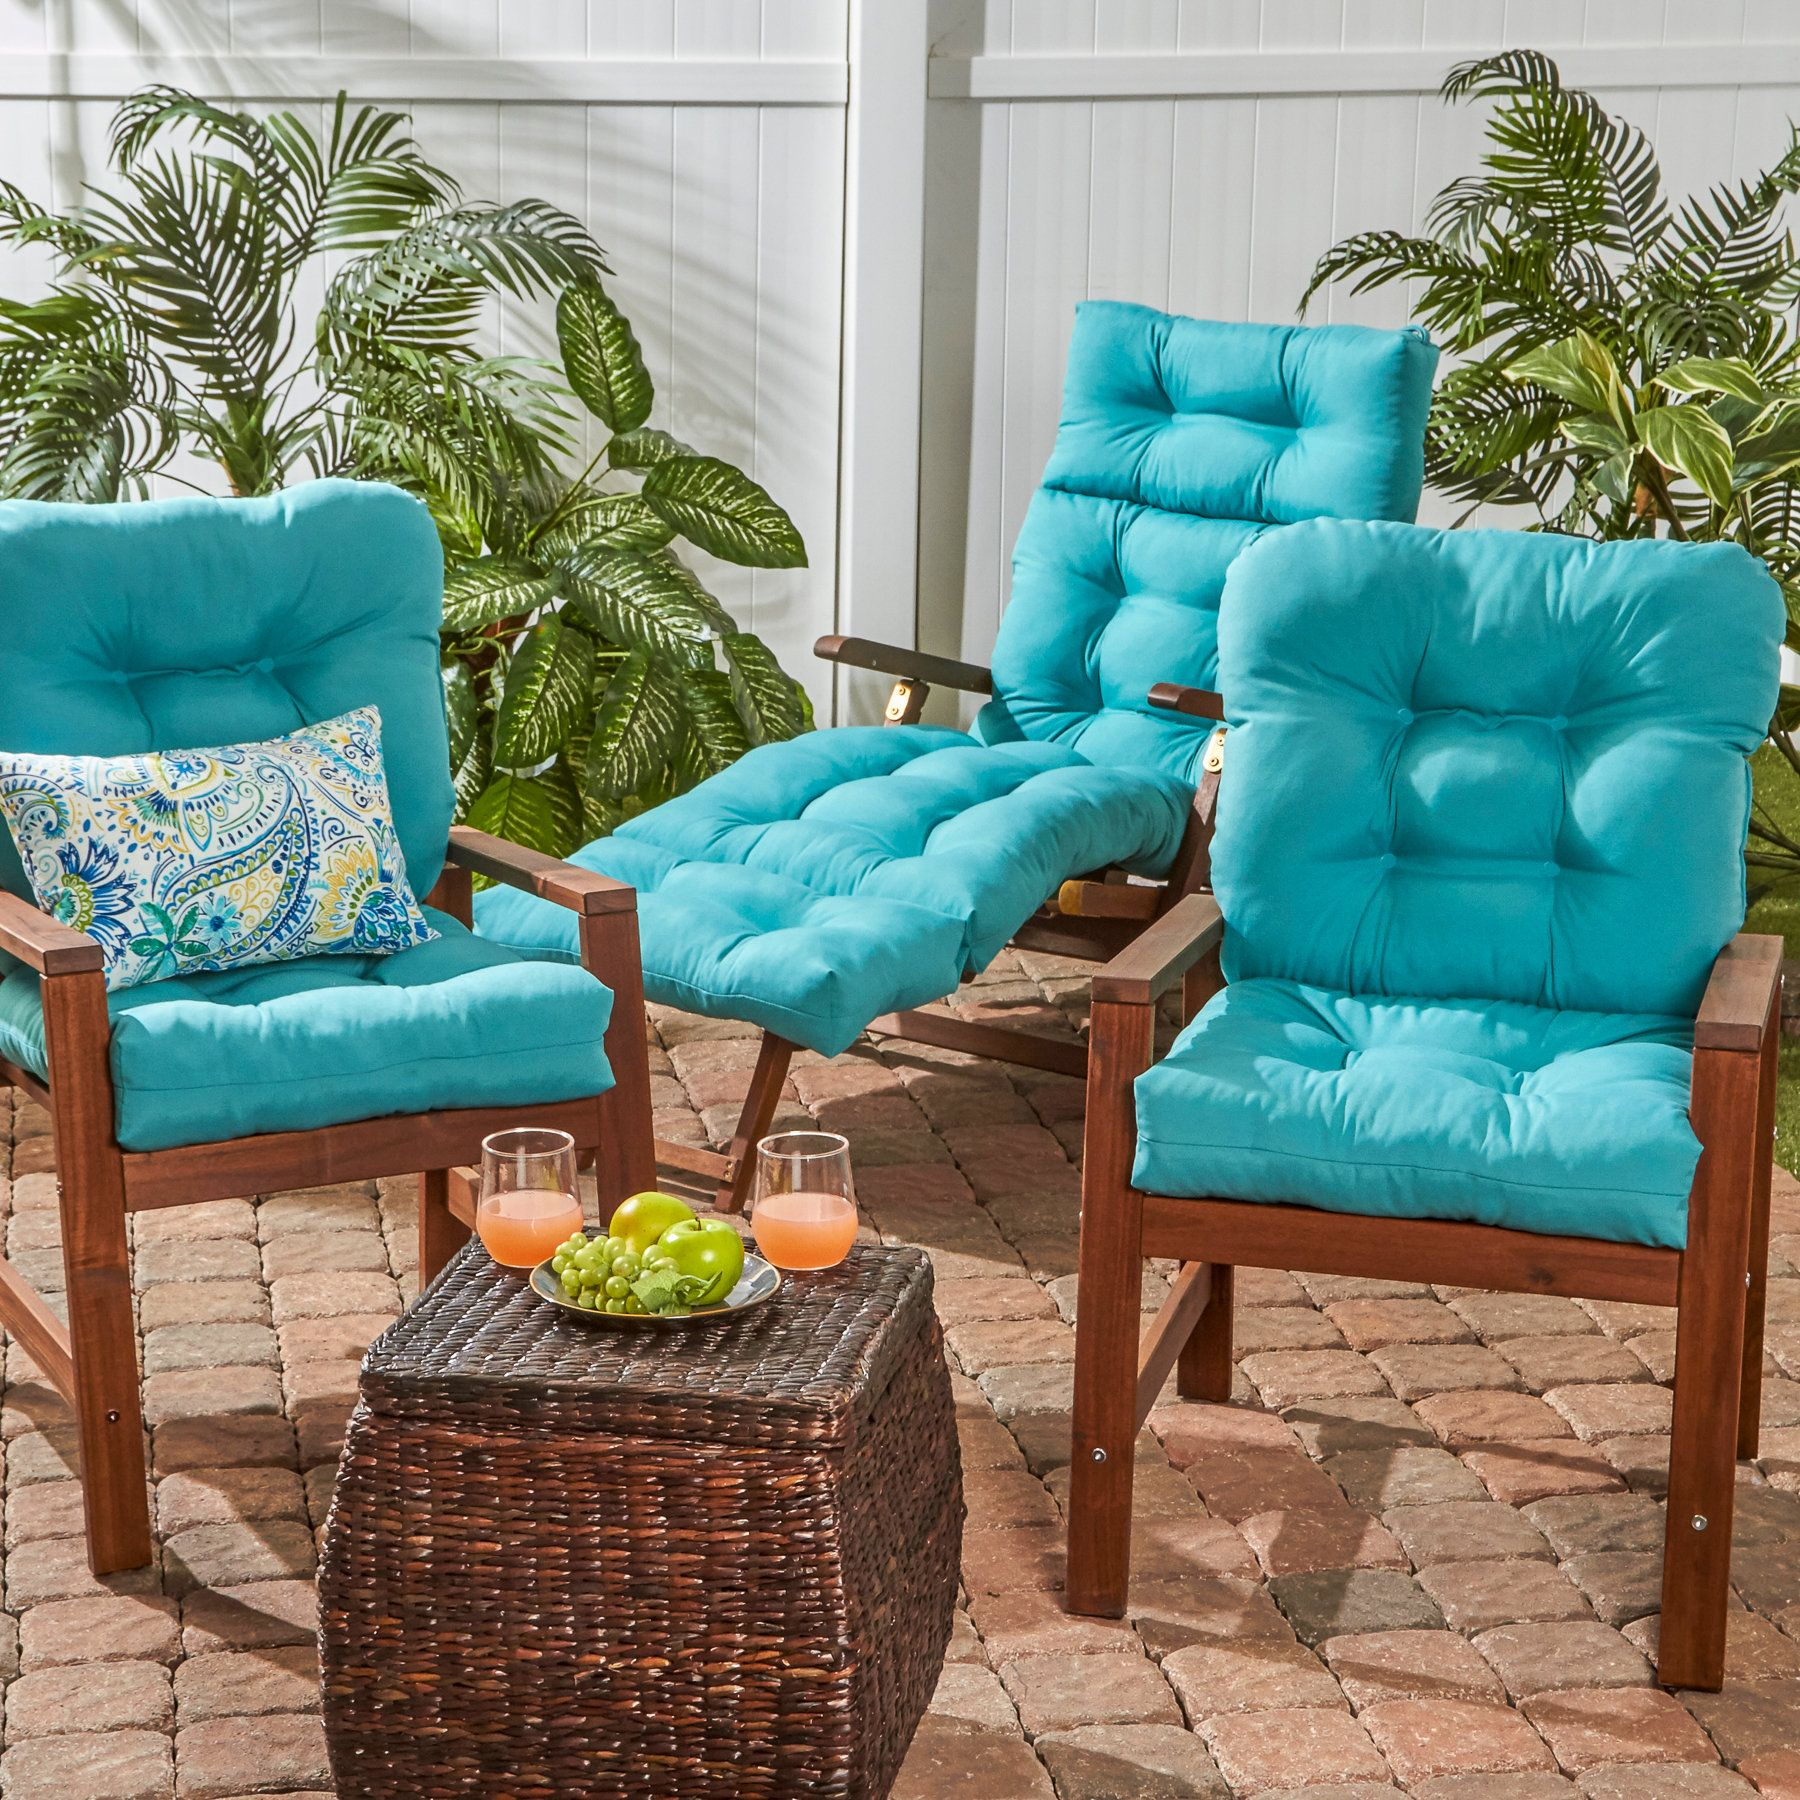 Outdoor Seat/Back Chair Cushion Set of 2 Outdoor seat